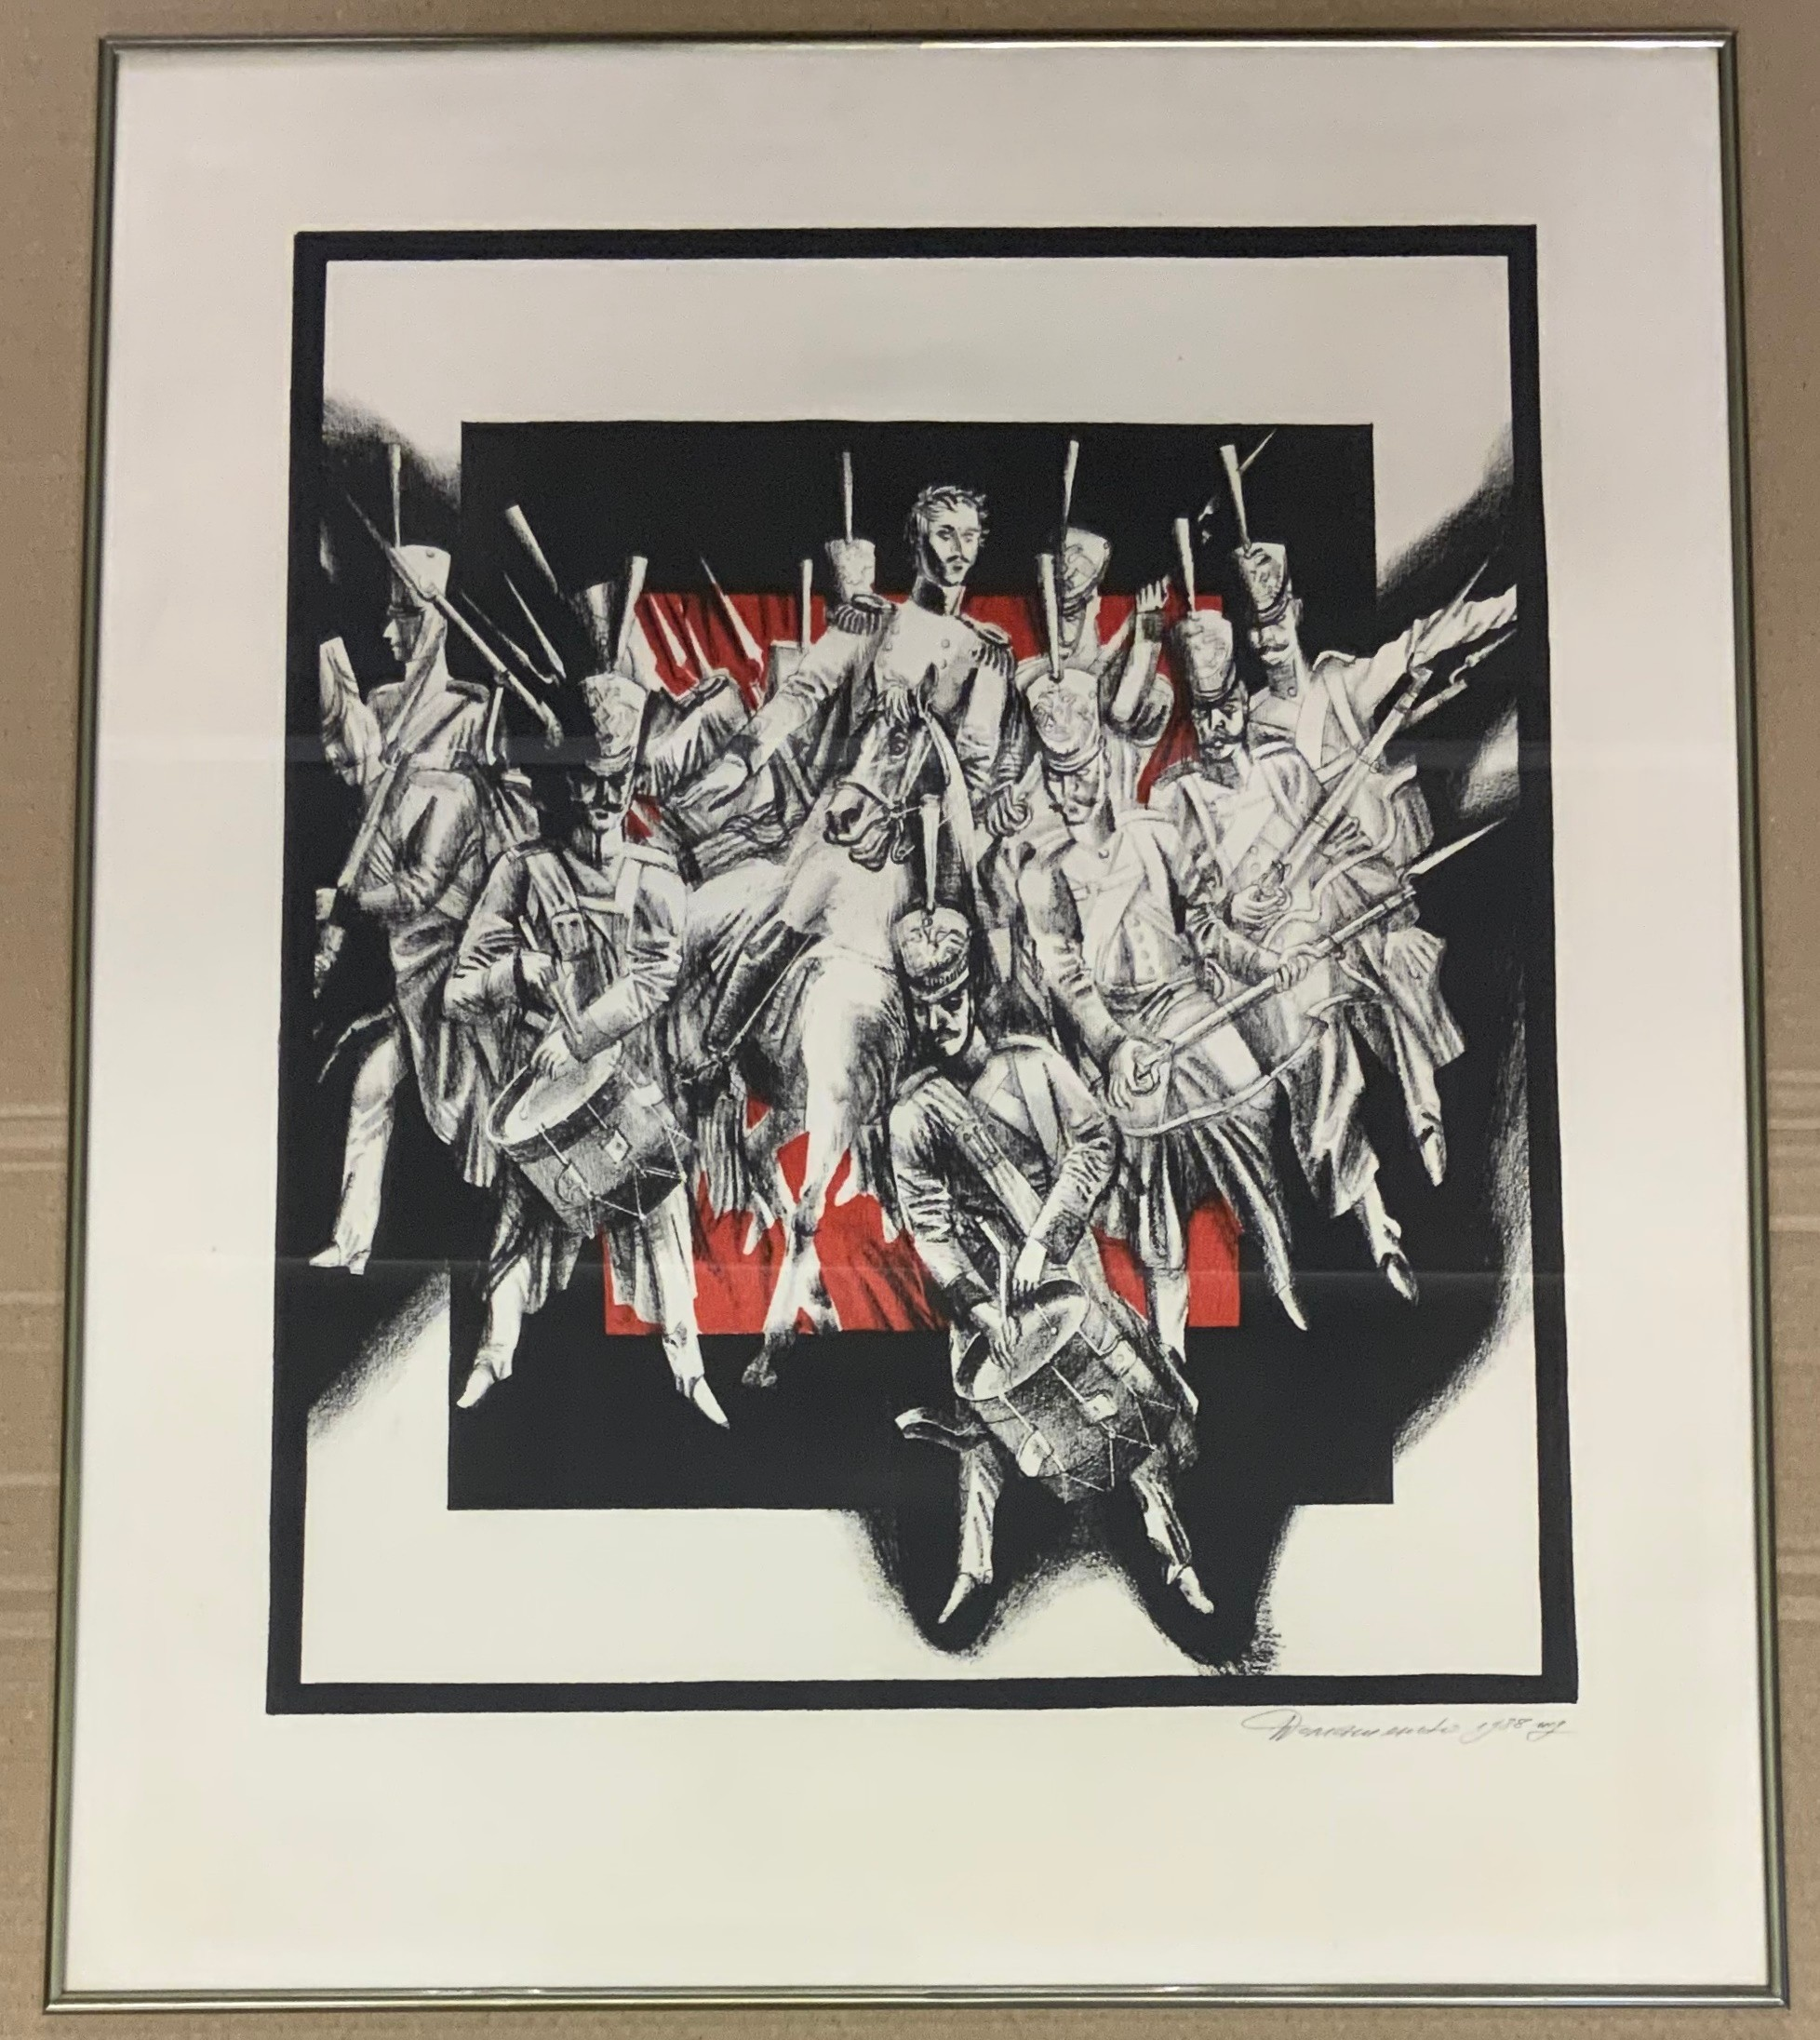 PAIR OF FRAMED LARGE SIGNED LINOCUT RUSSIAN PRINTS